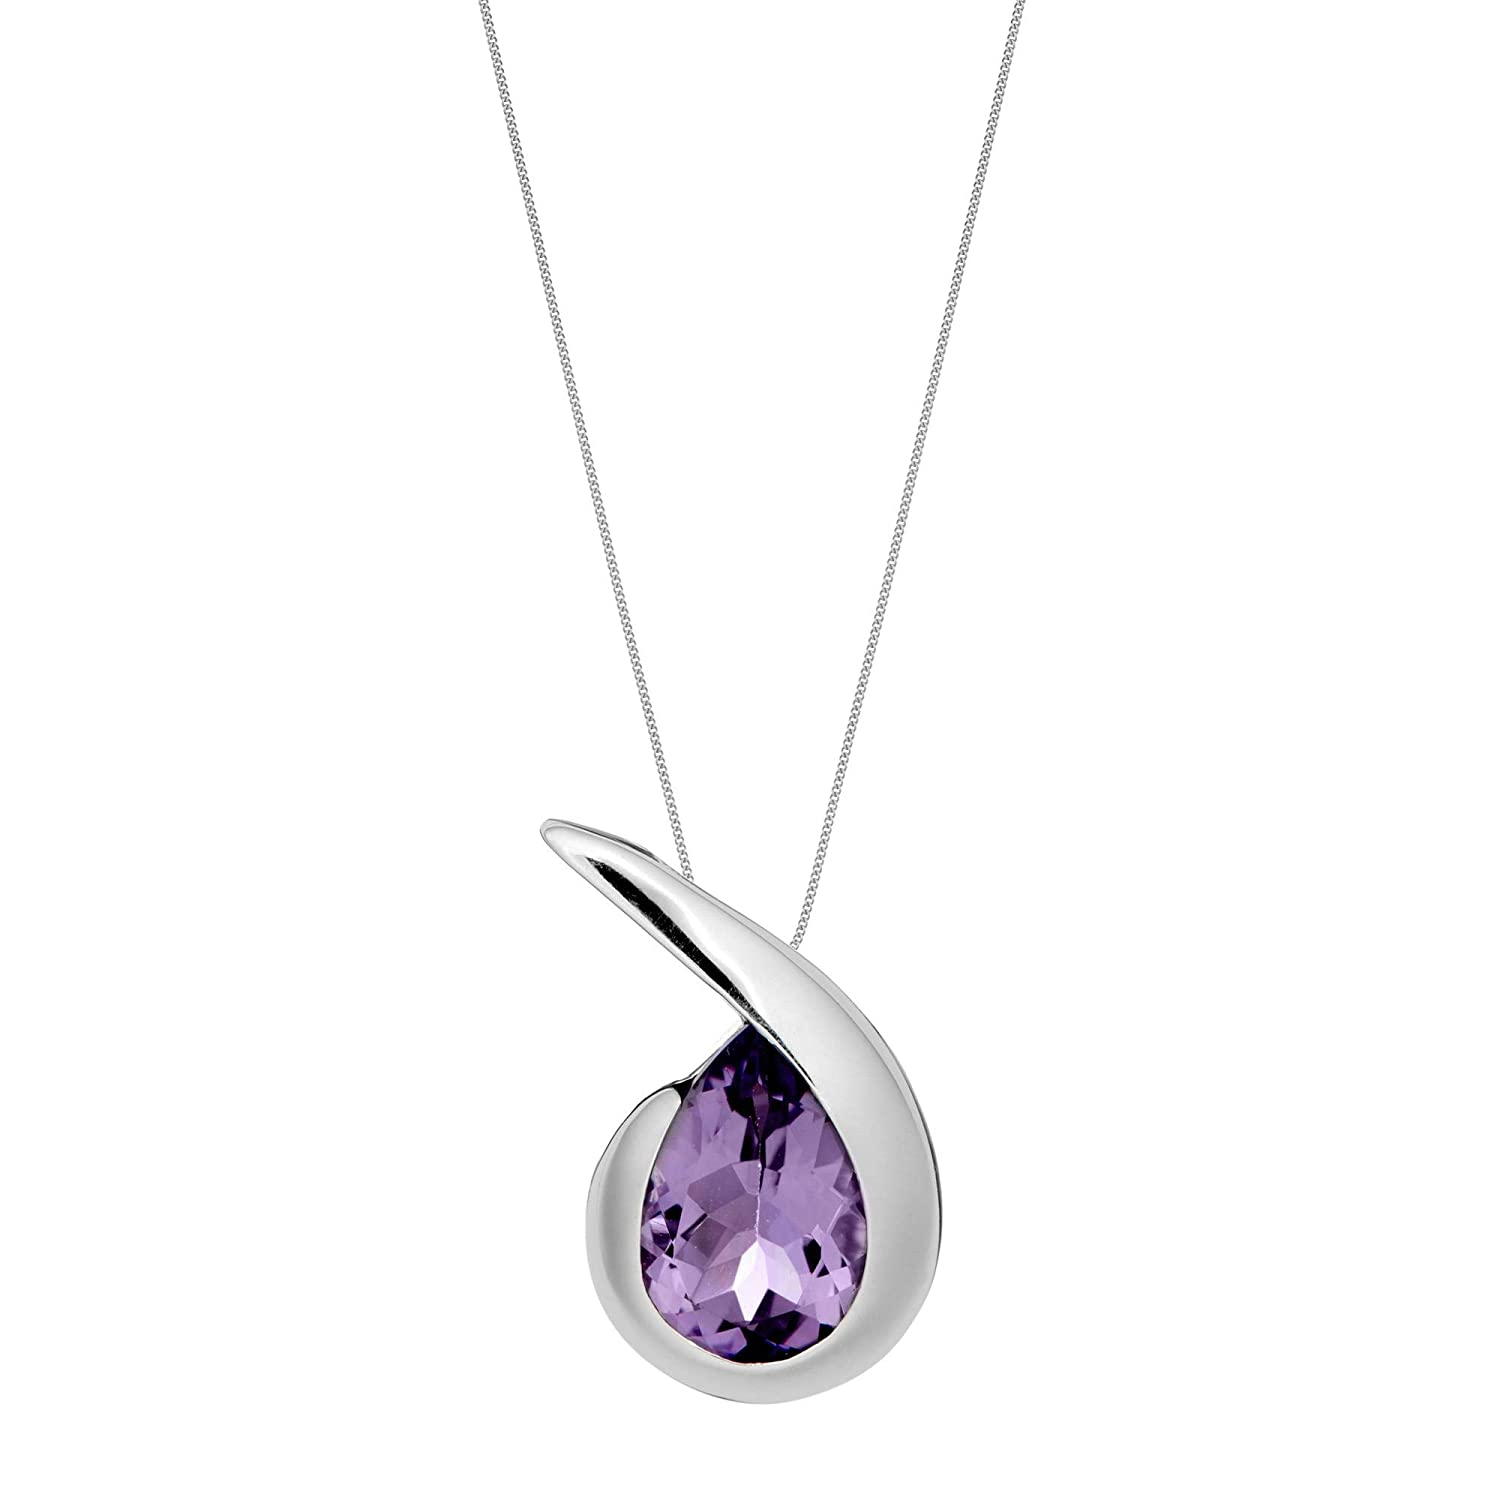 Silverly Womens .925 Sterling Silver Amethyst Comma Quotation Mark Drop Pendant Necklace 18